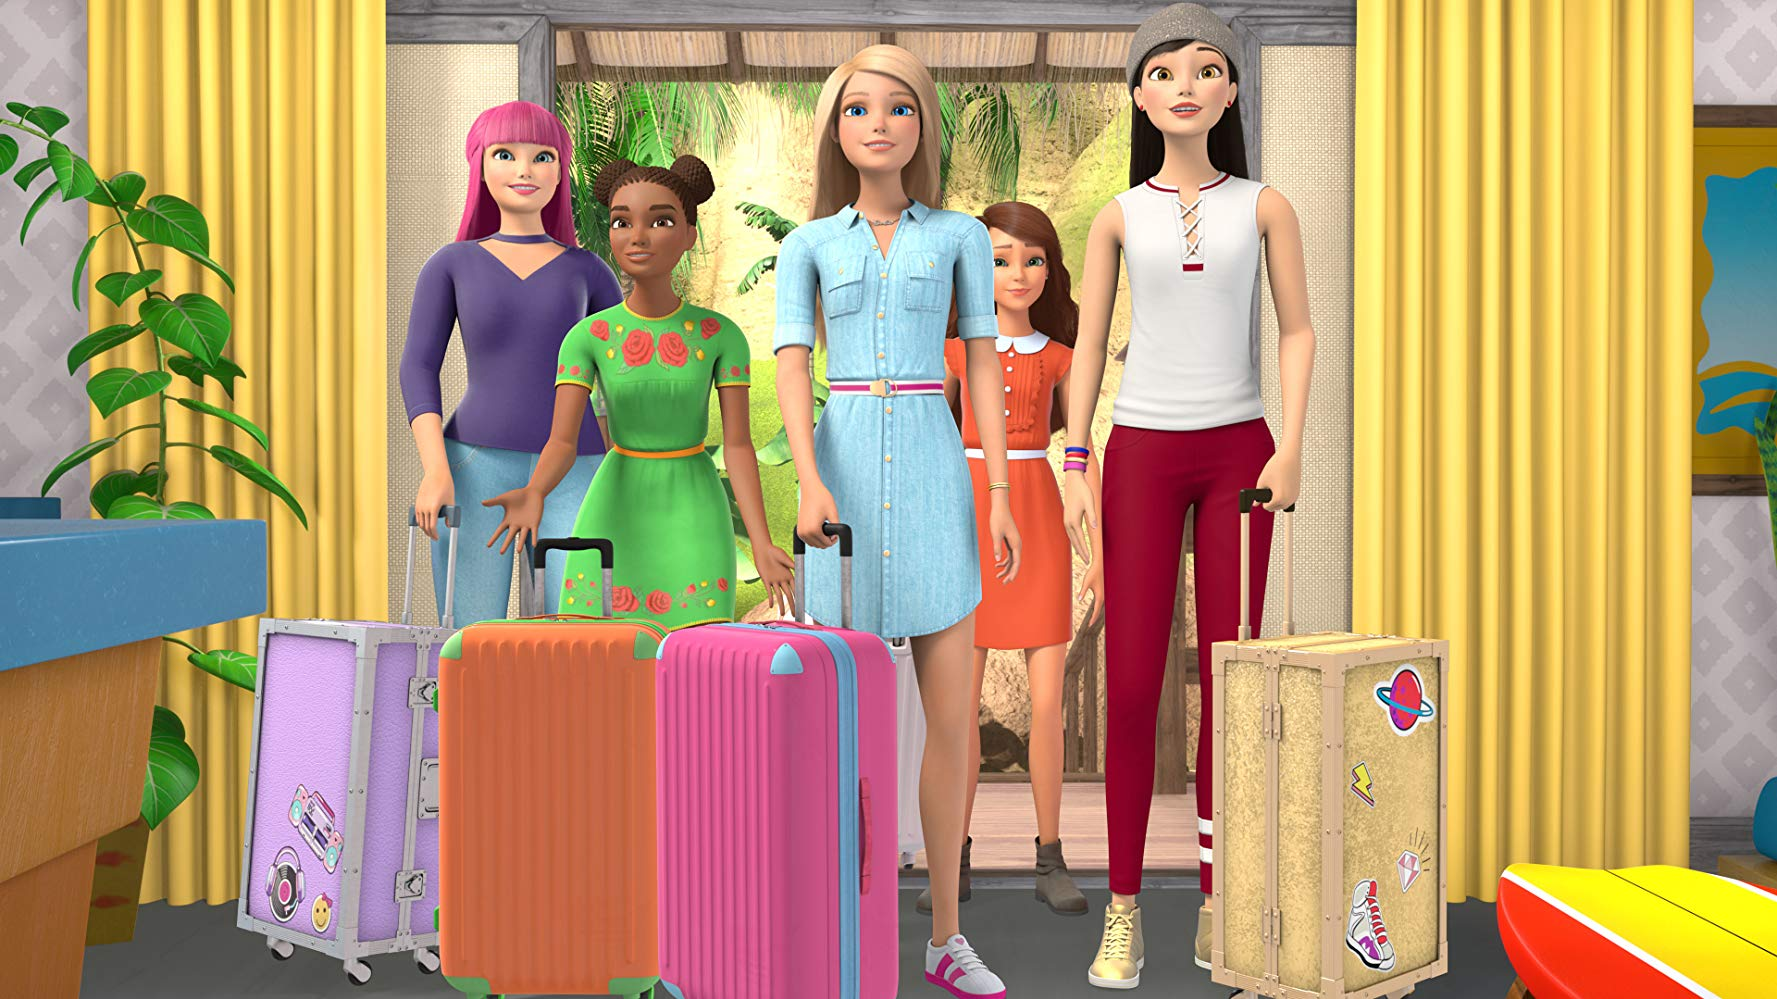 Barbie Dreamhouse Adventures - The animated series